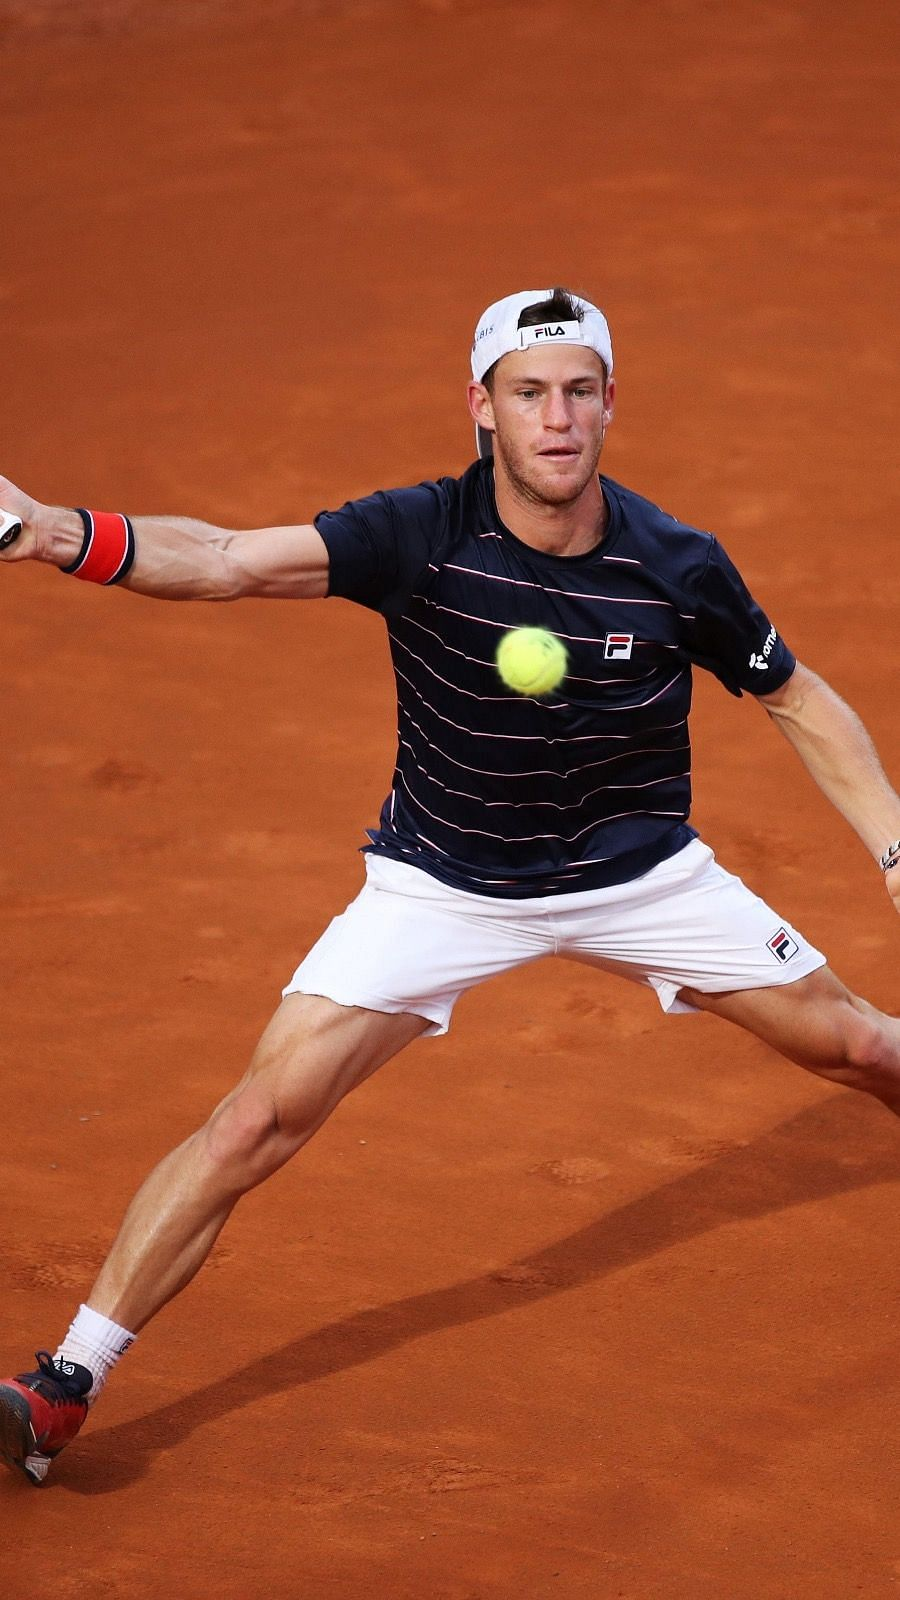 Roland Garros Diego Schwartzman Vs Miomir Kecmanovic Preview Head To Head Prediction French Open 2020